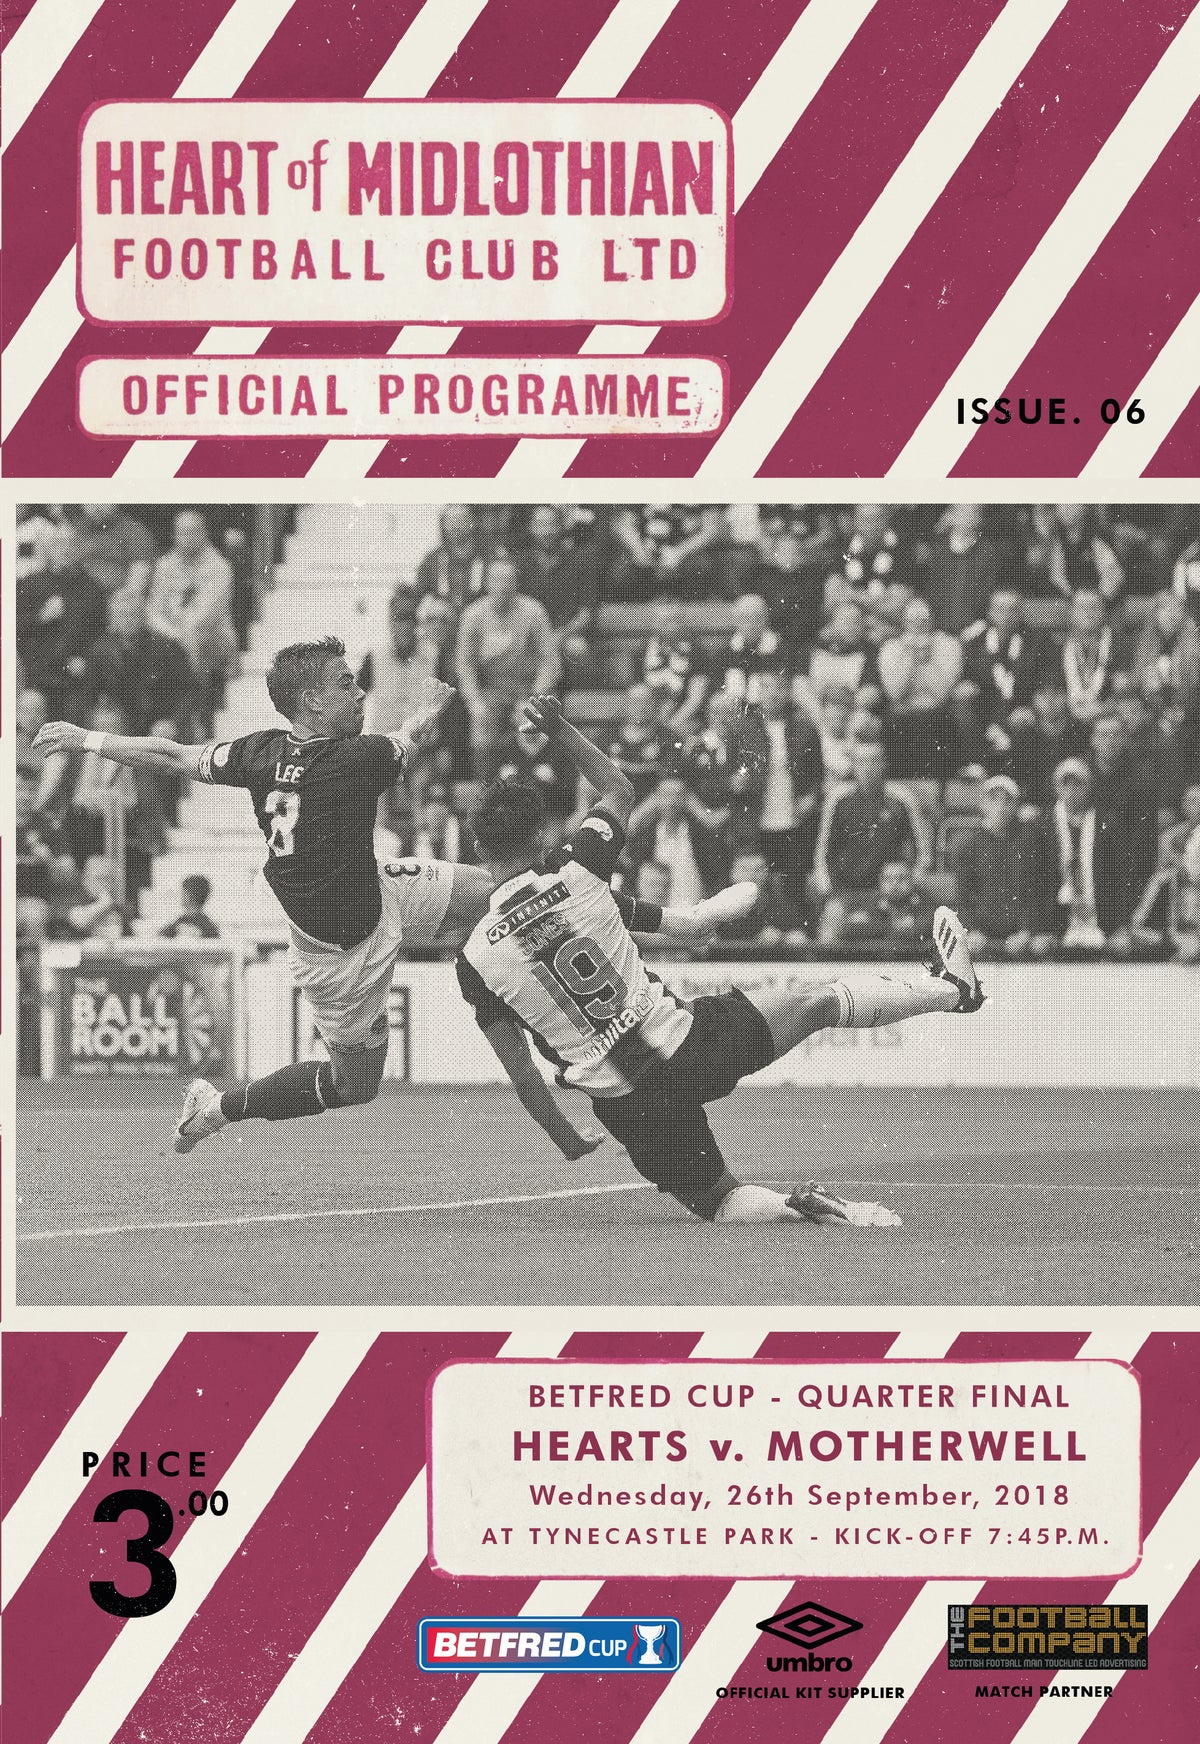 Image of Hearts v Motherwell, 26th September 2018